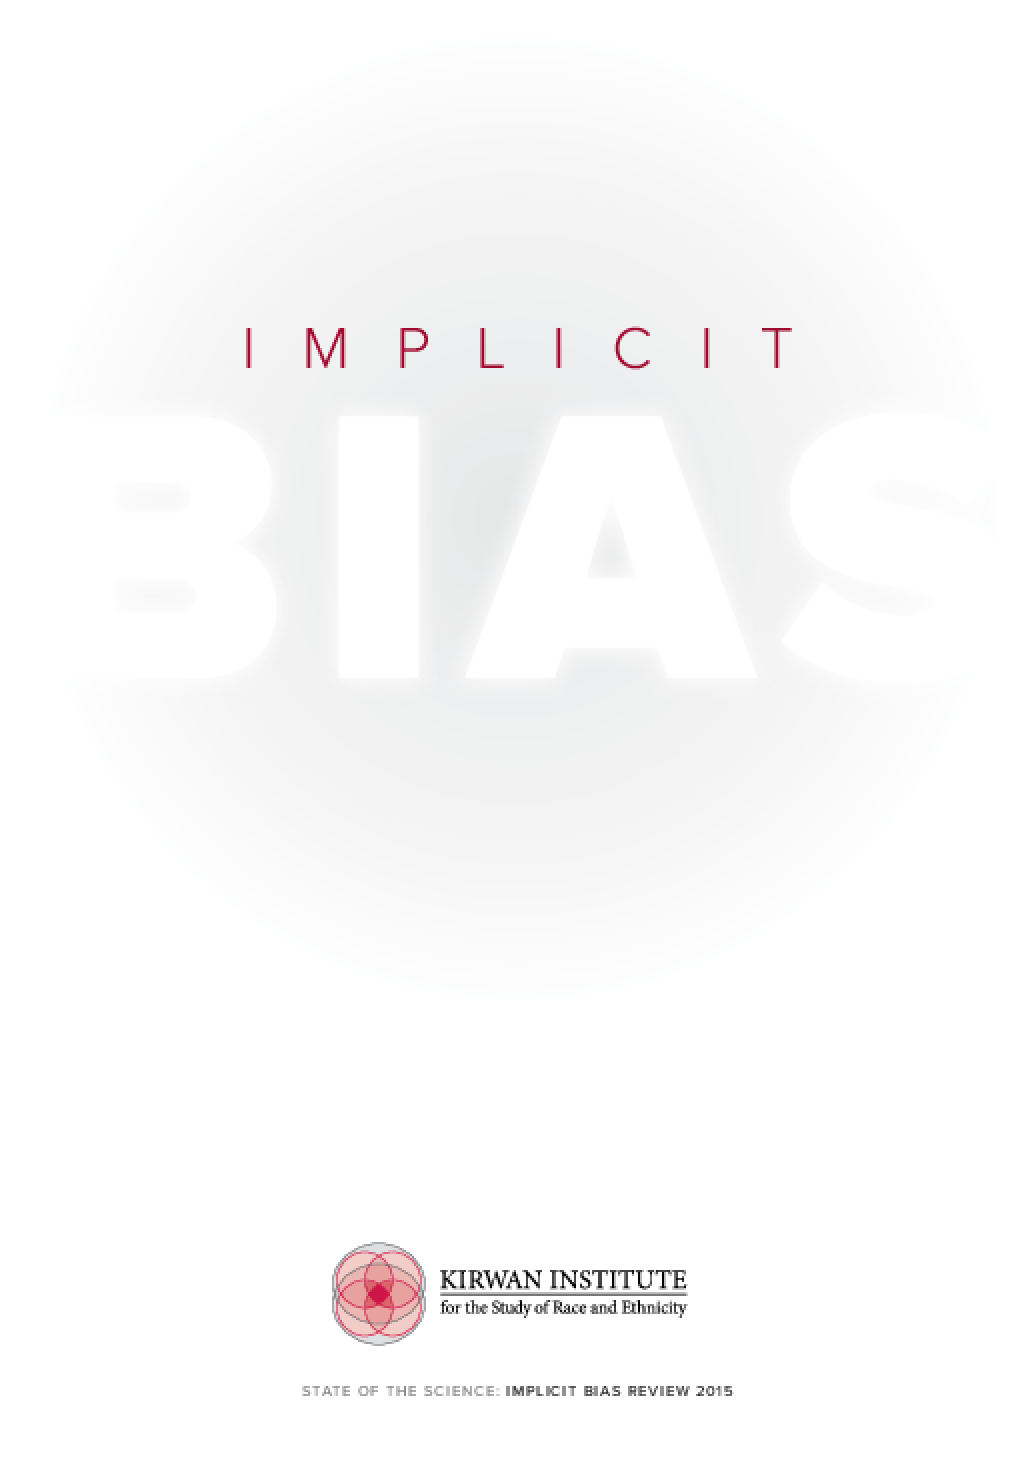 State of the Science: Implicit Bias Review 2015